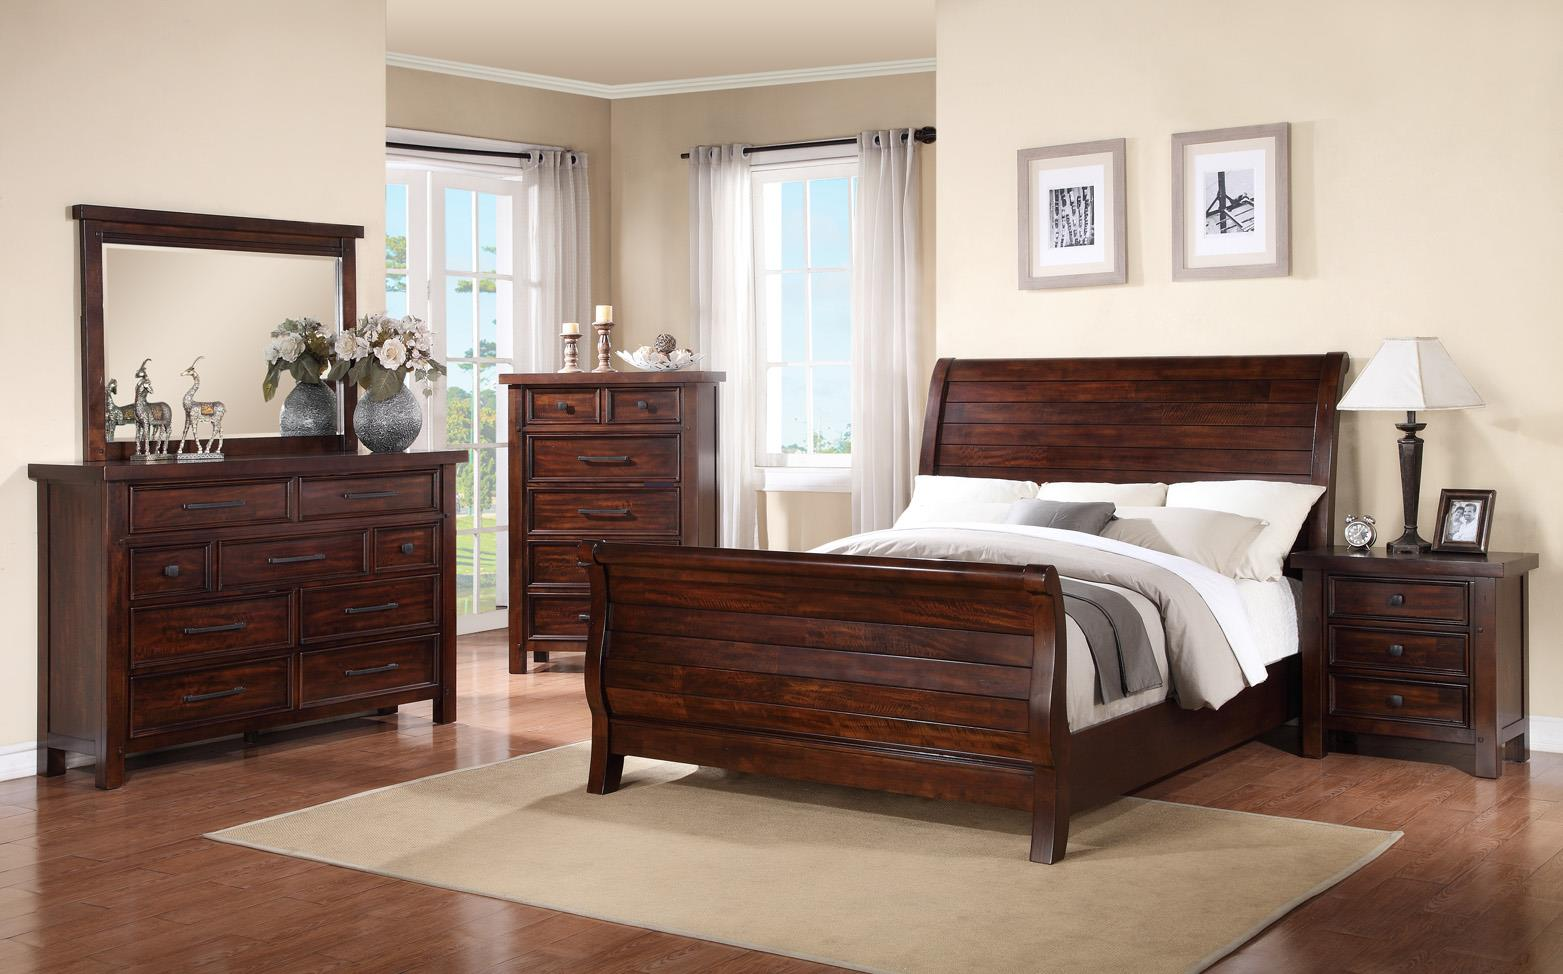 Holland House Sonoma Rustic Casual Gentleman Chest   Godby Home Furnishings    Lingerie Chests Noblesville, Carmel, Avon, Indianapolis, Indiana